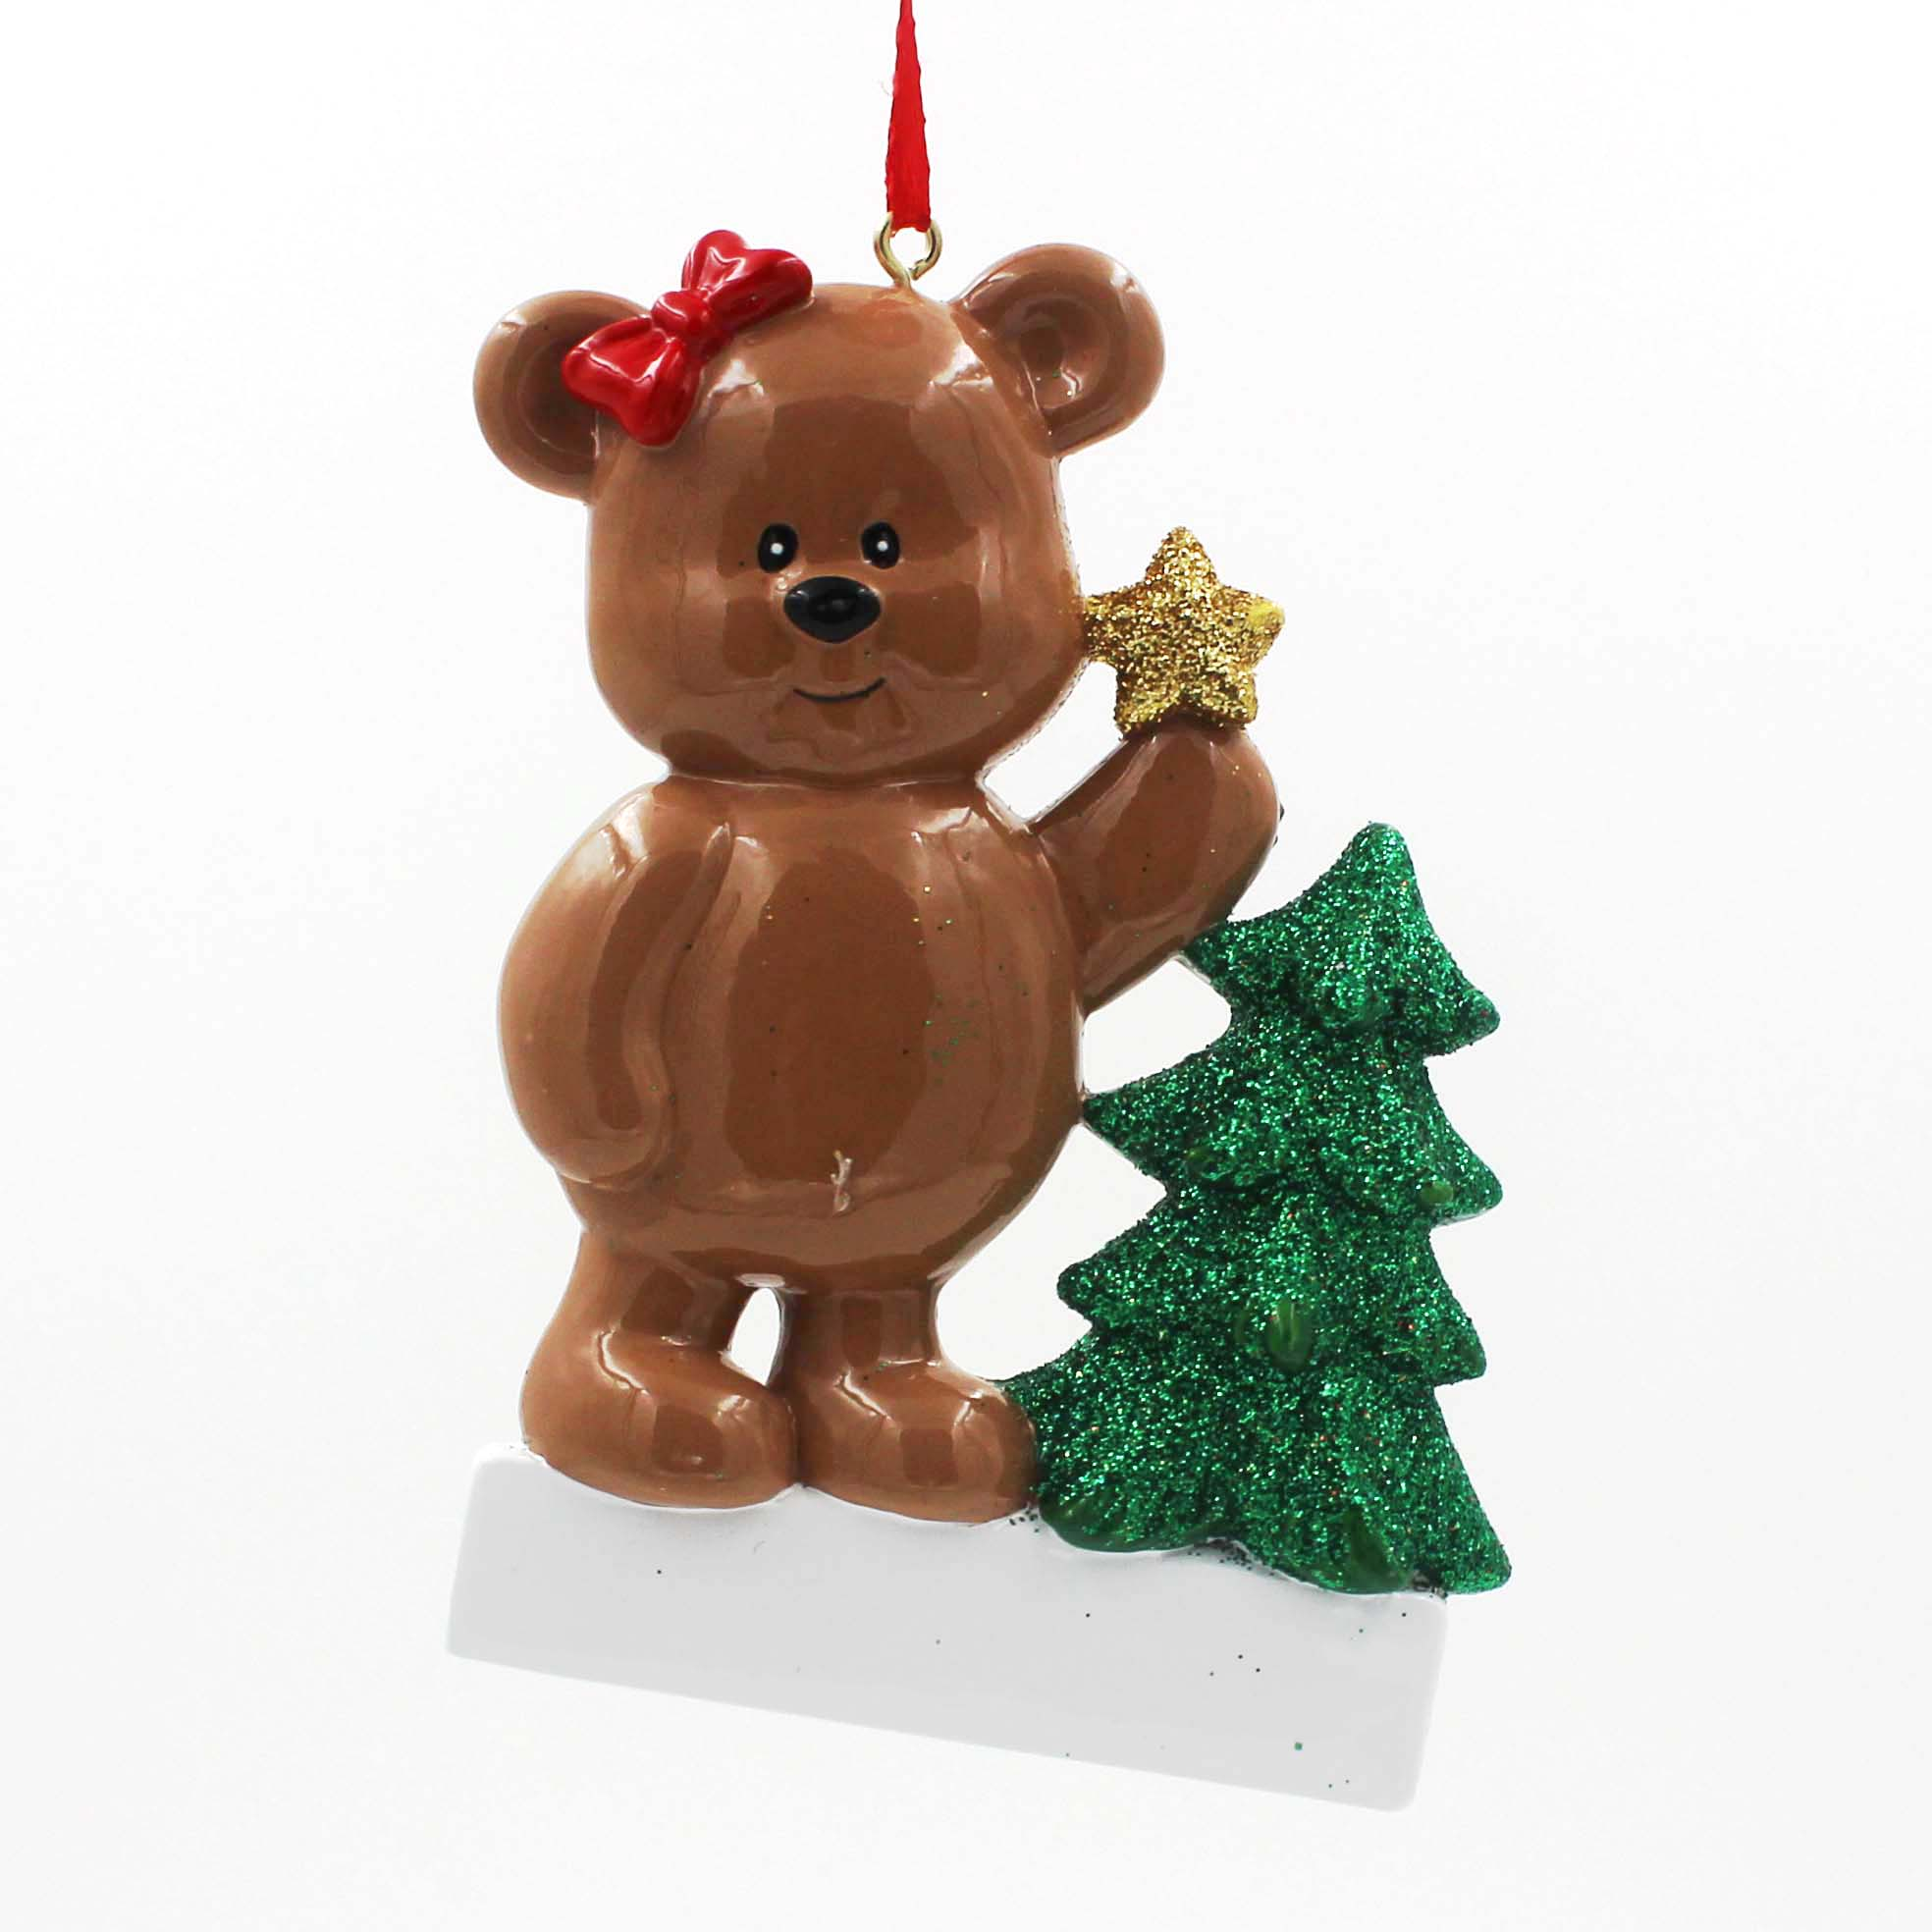 Bear with tree Ornaments Personalized Christmas Tree Ornament